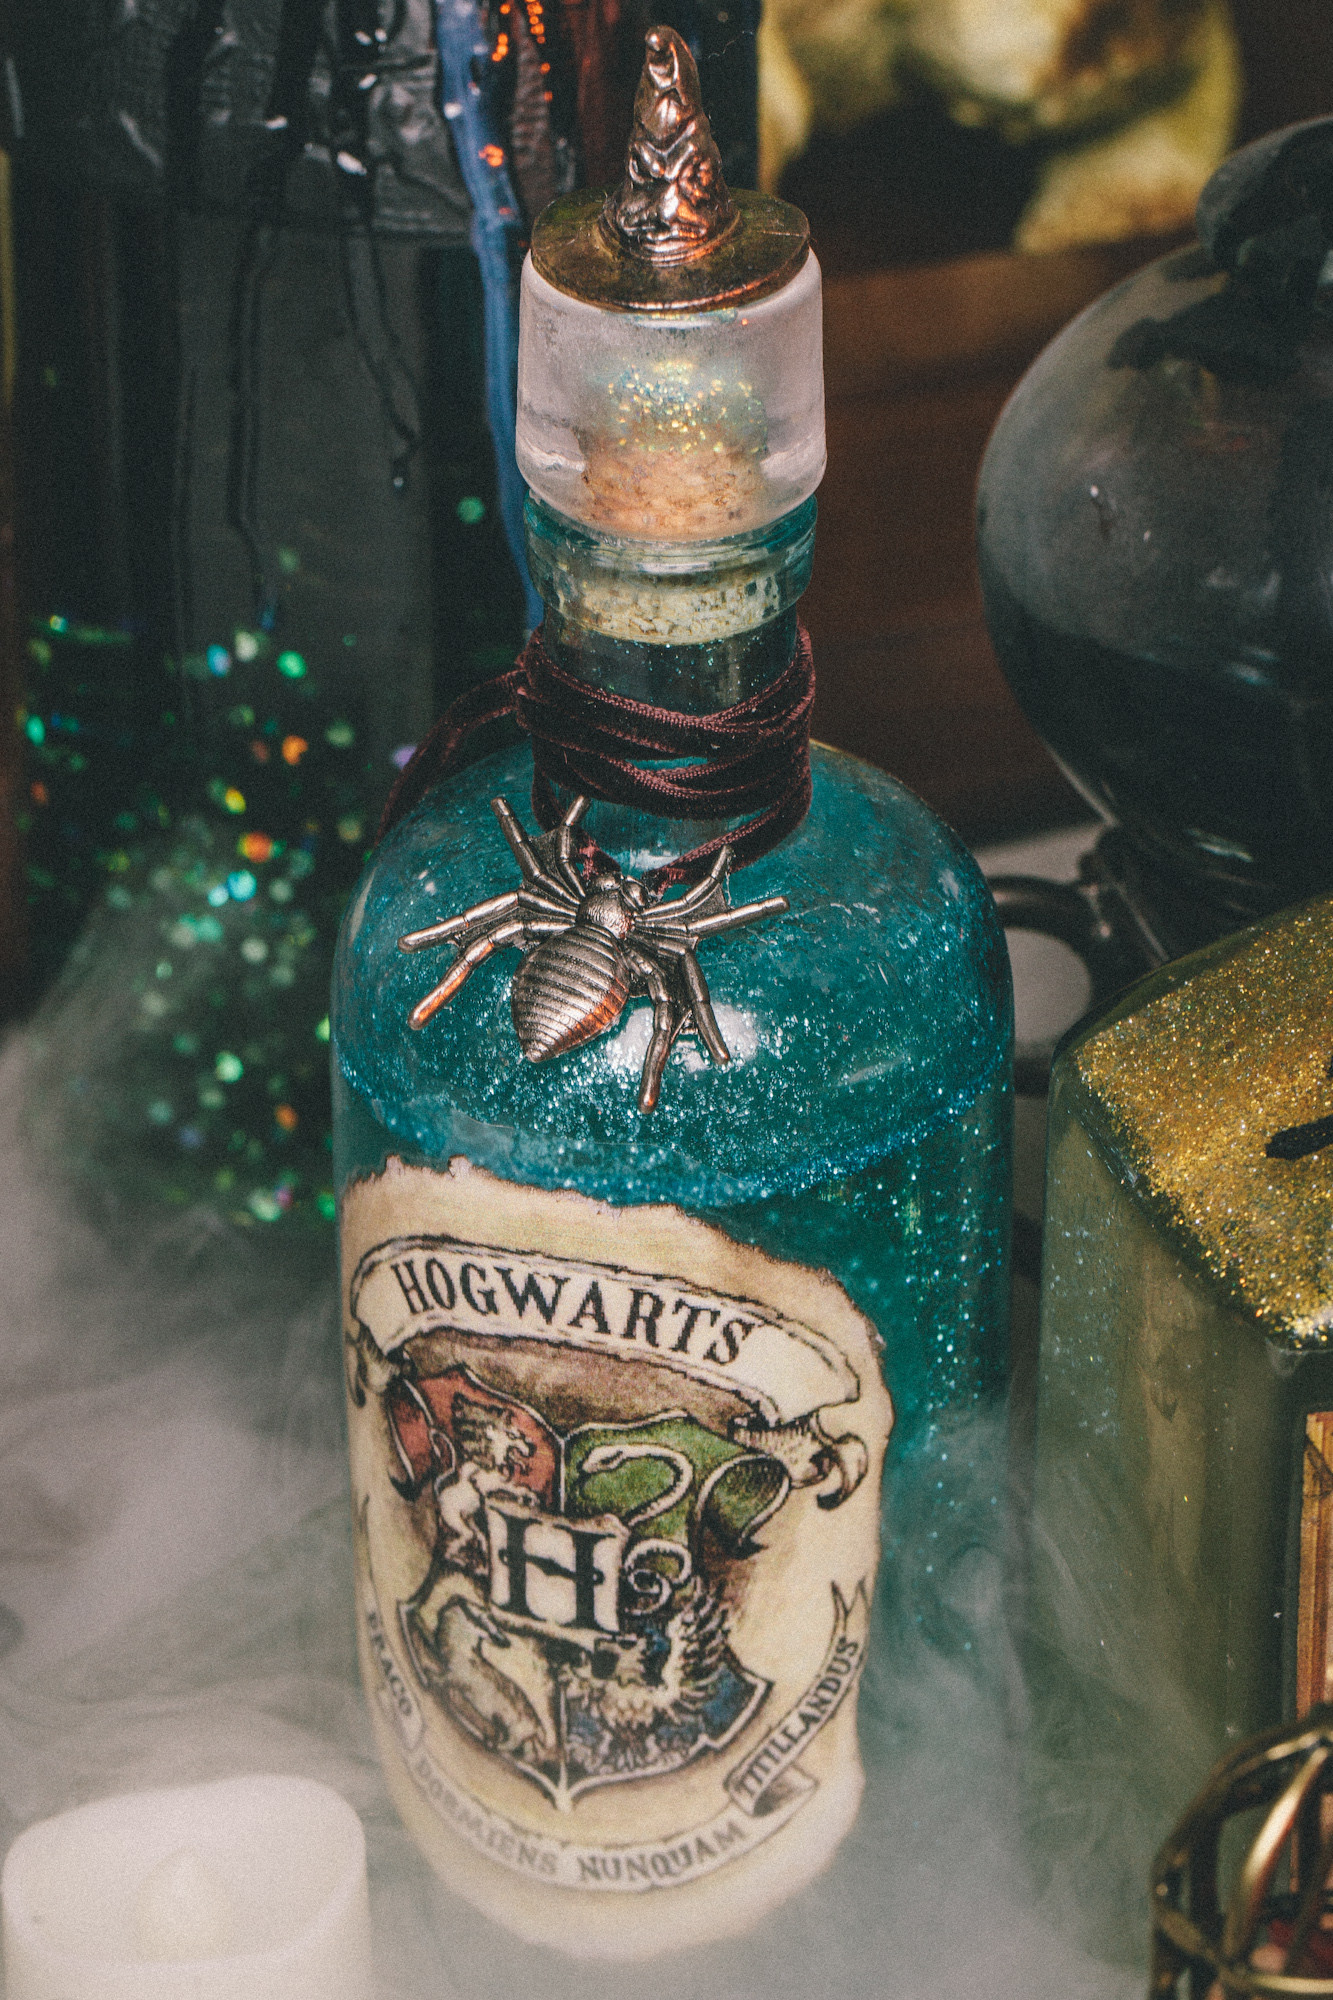 Best ideas about Harry Potter Potions DIY . Save or Pin Other DIY Harry Potter Potions for Halloween Hogwarts Potion Now.